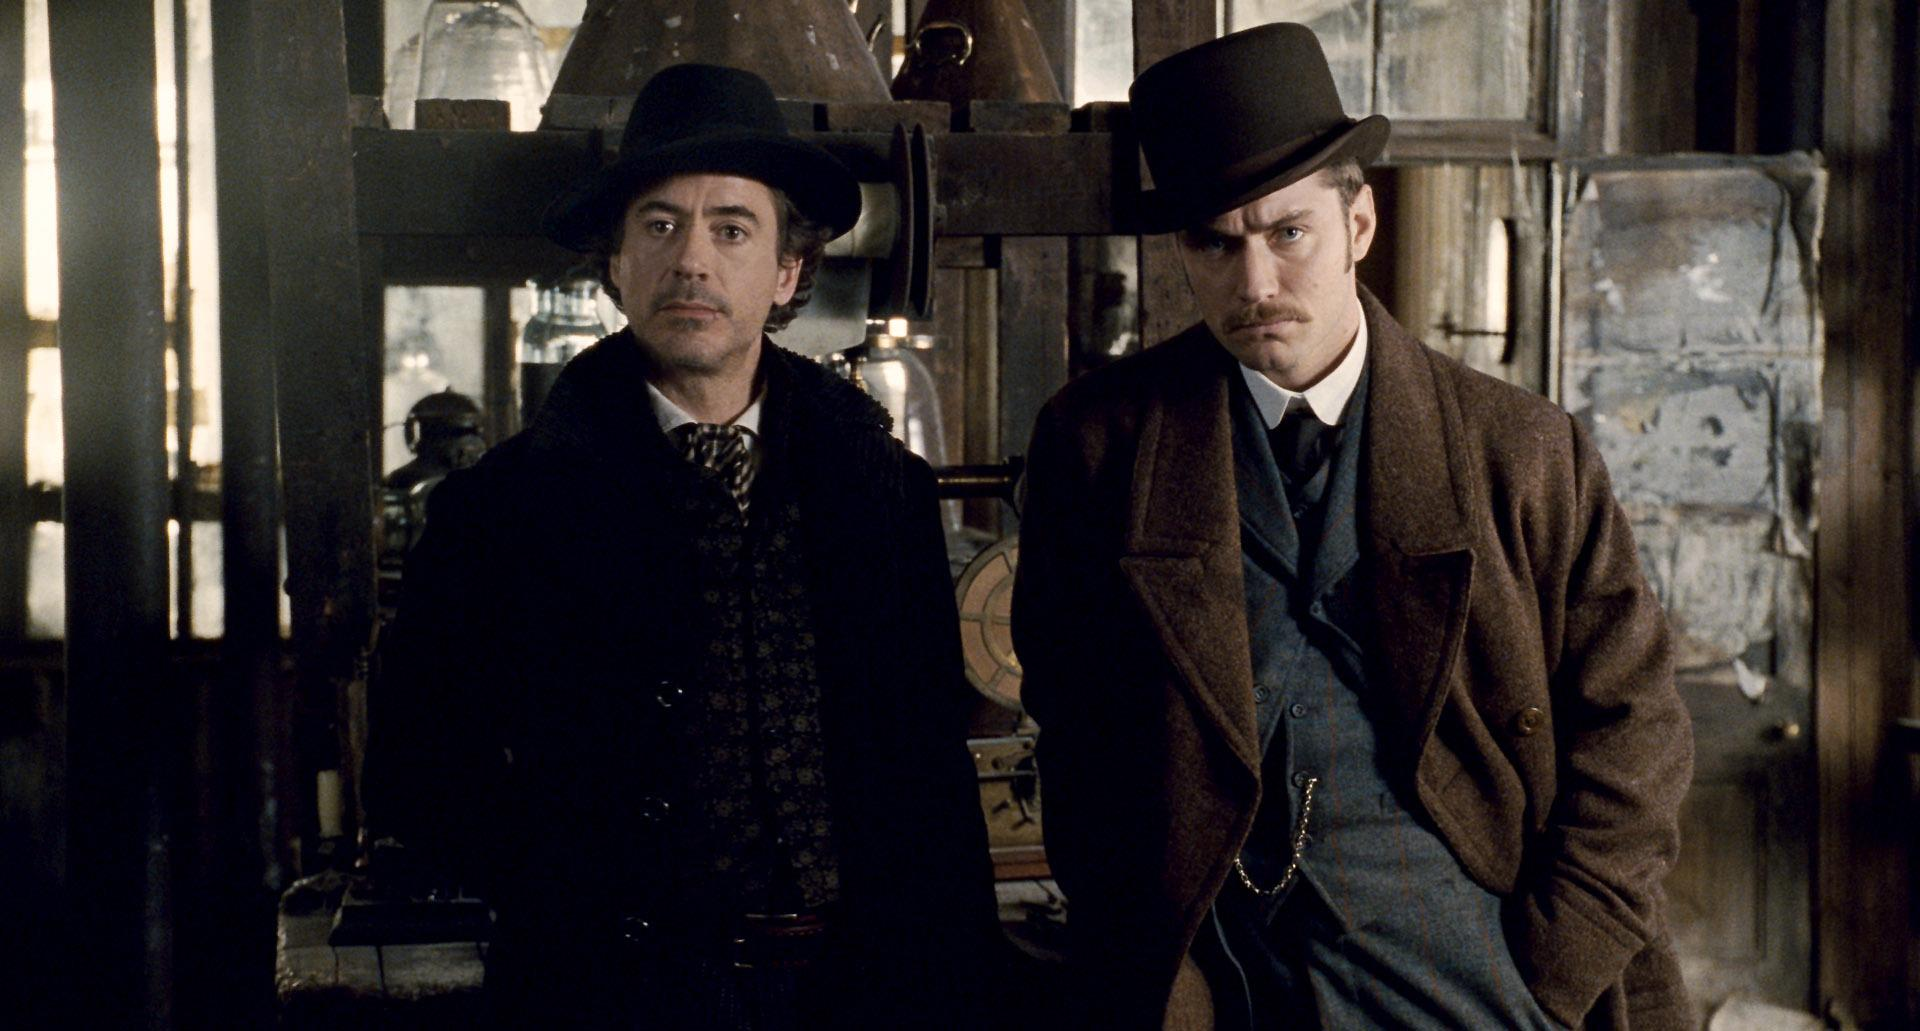 'Sherlock Holmes 3' Will Be Released Christmas 2020